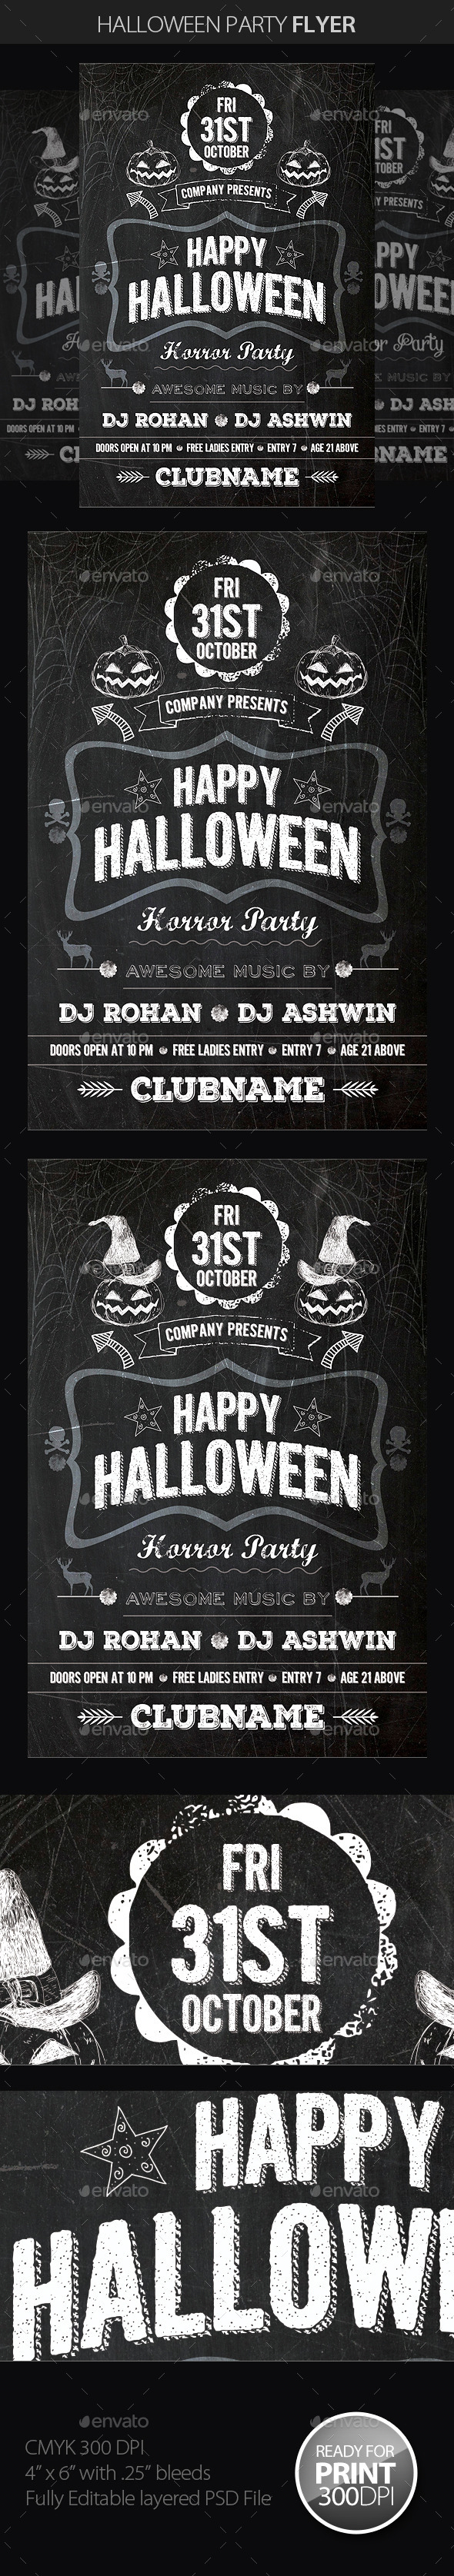 GraphicRiver Halloween Party Flyer 8989013